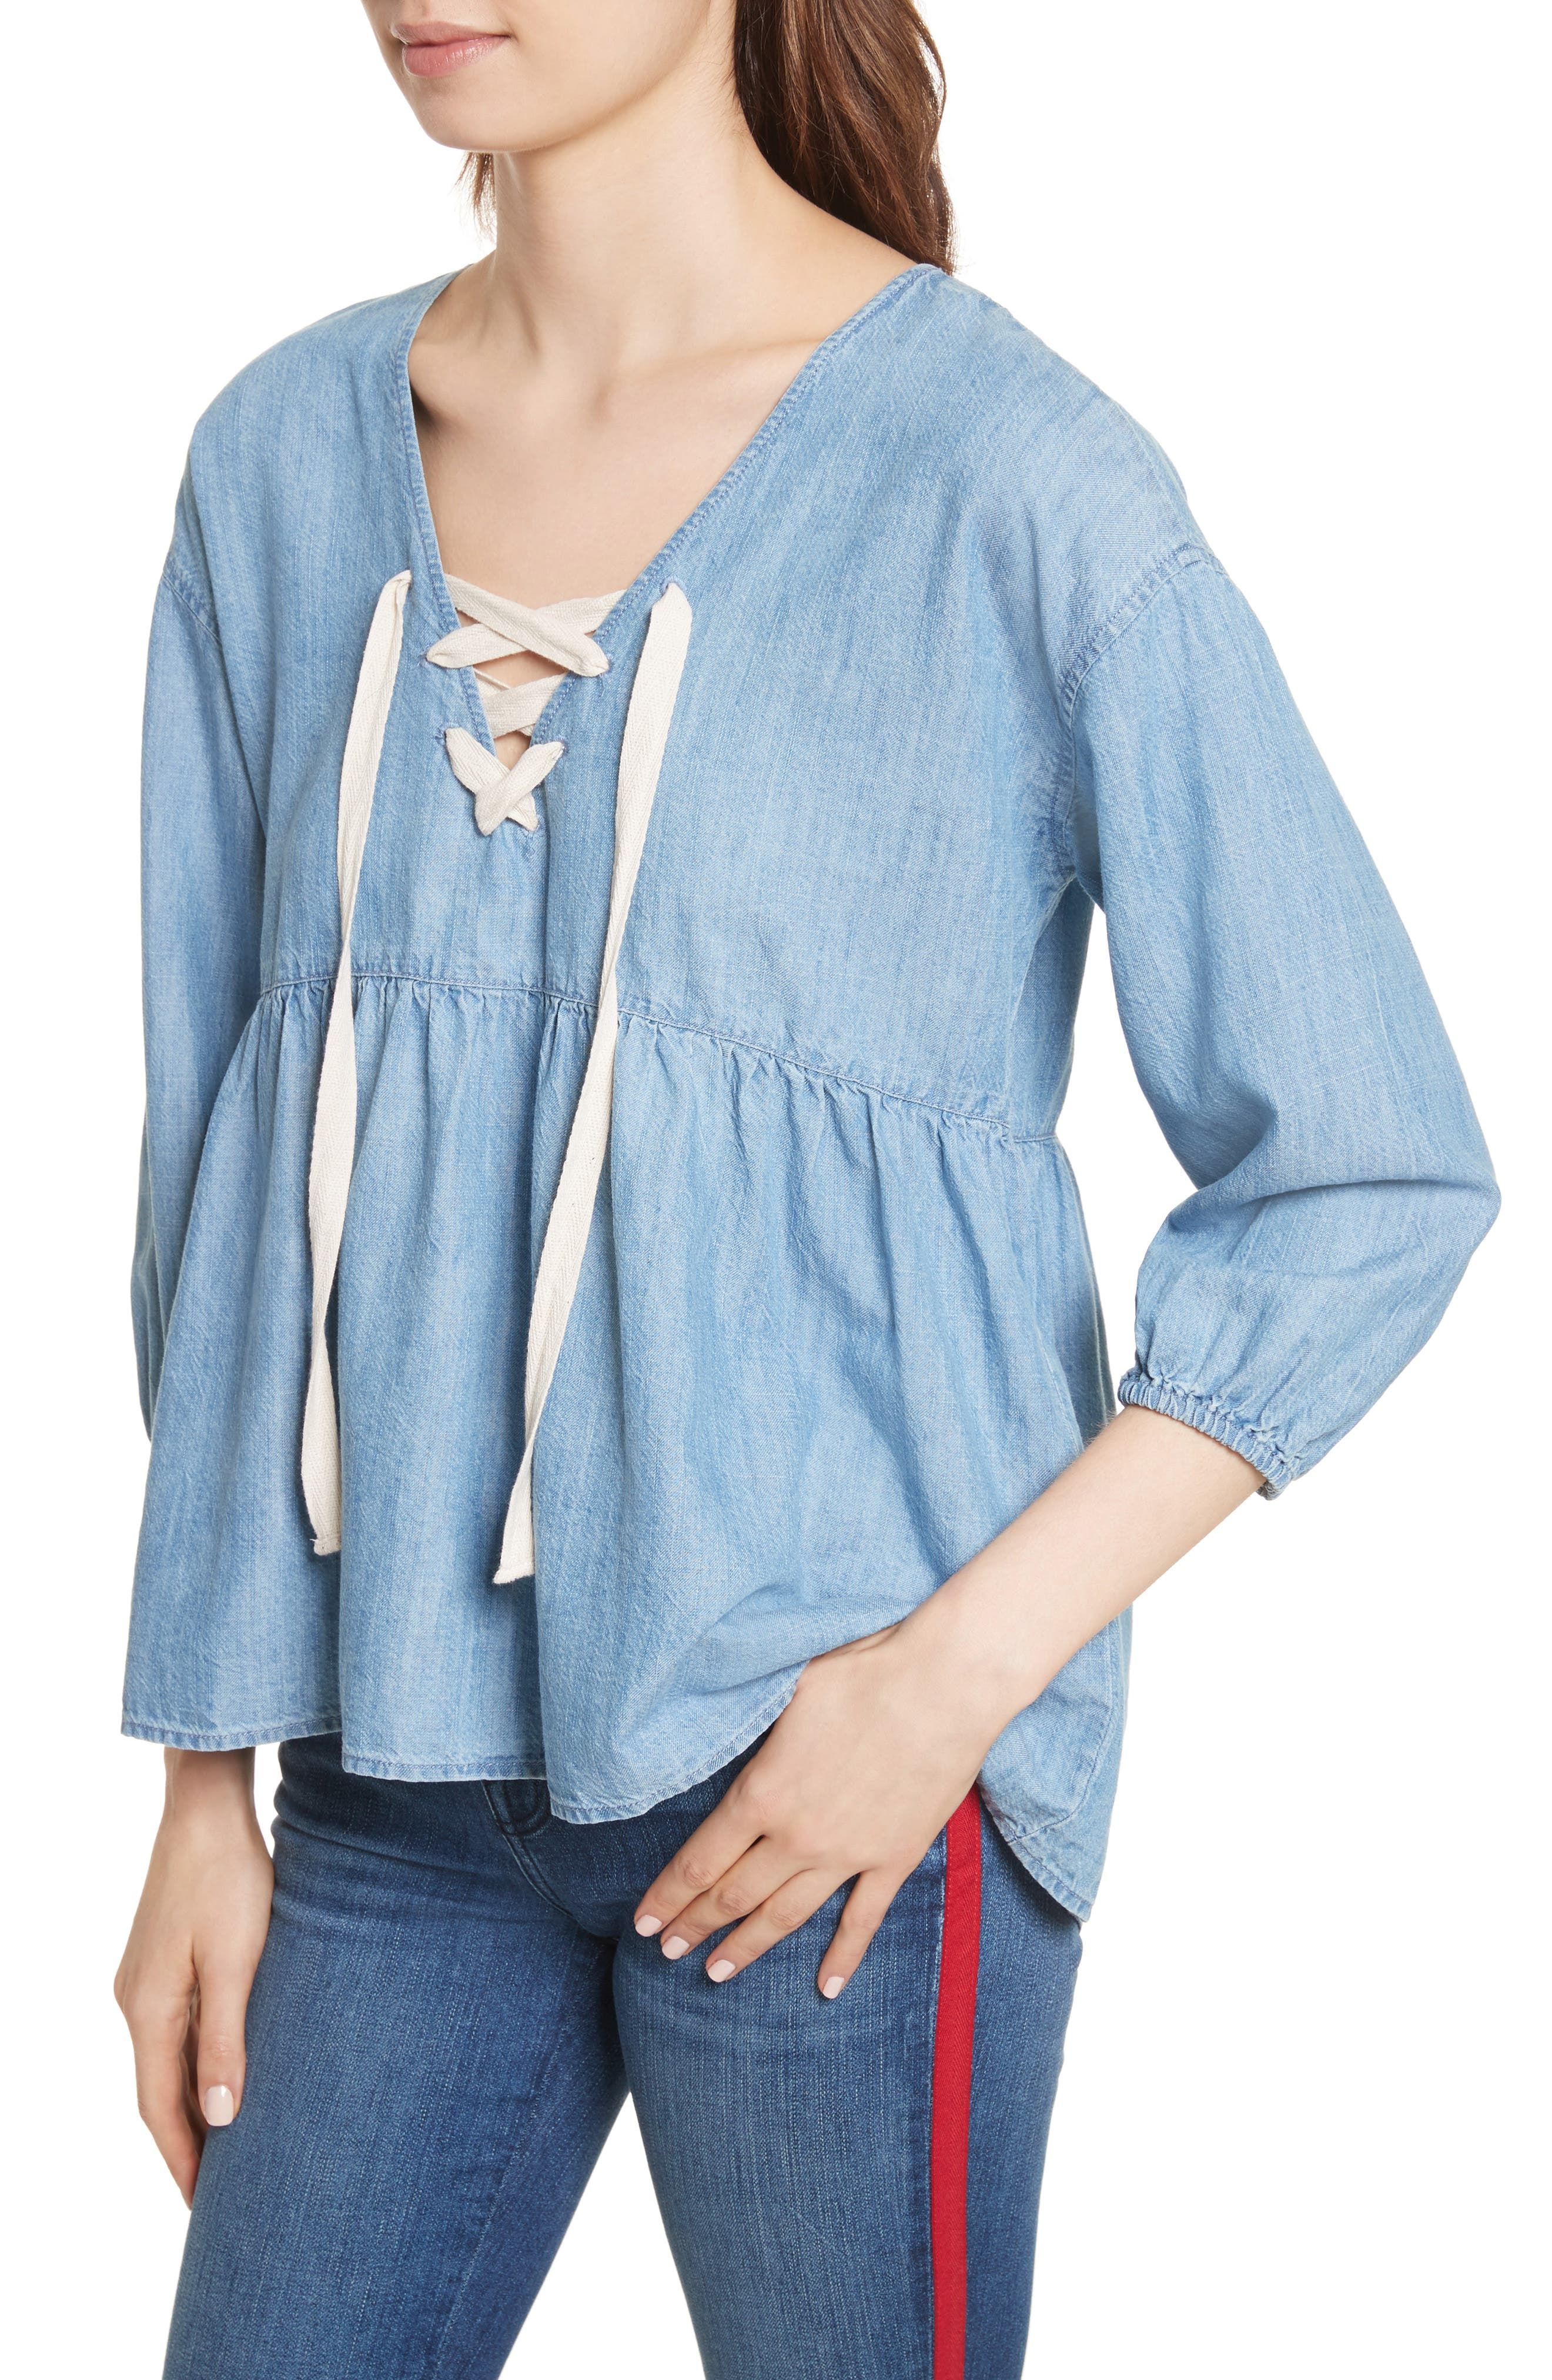 Bealette Lace-Up Chambray Top,                             Alternate thumbnail 4, color,                             481